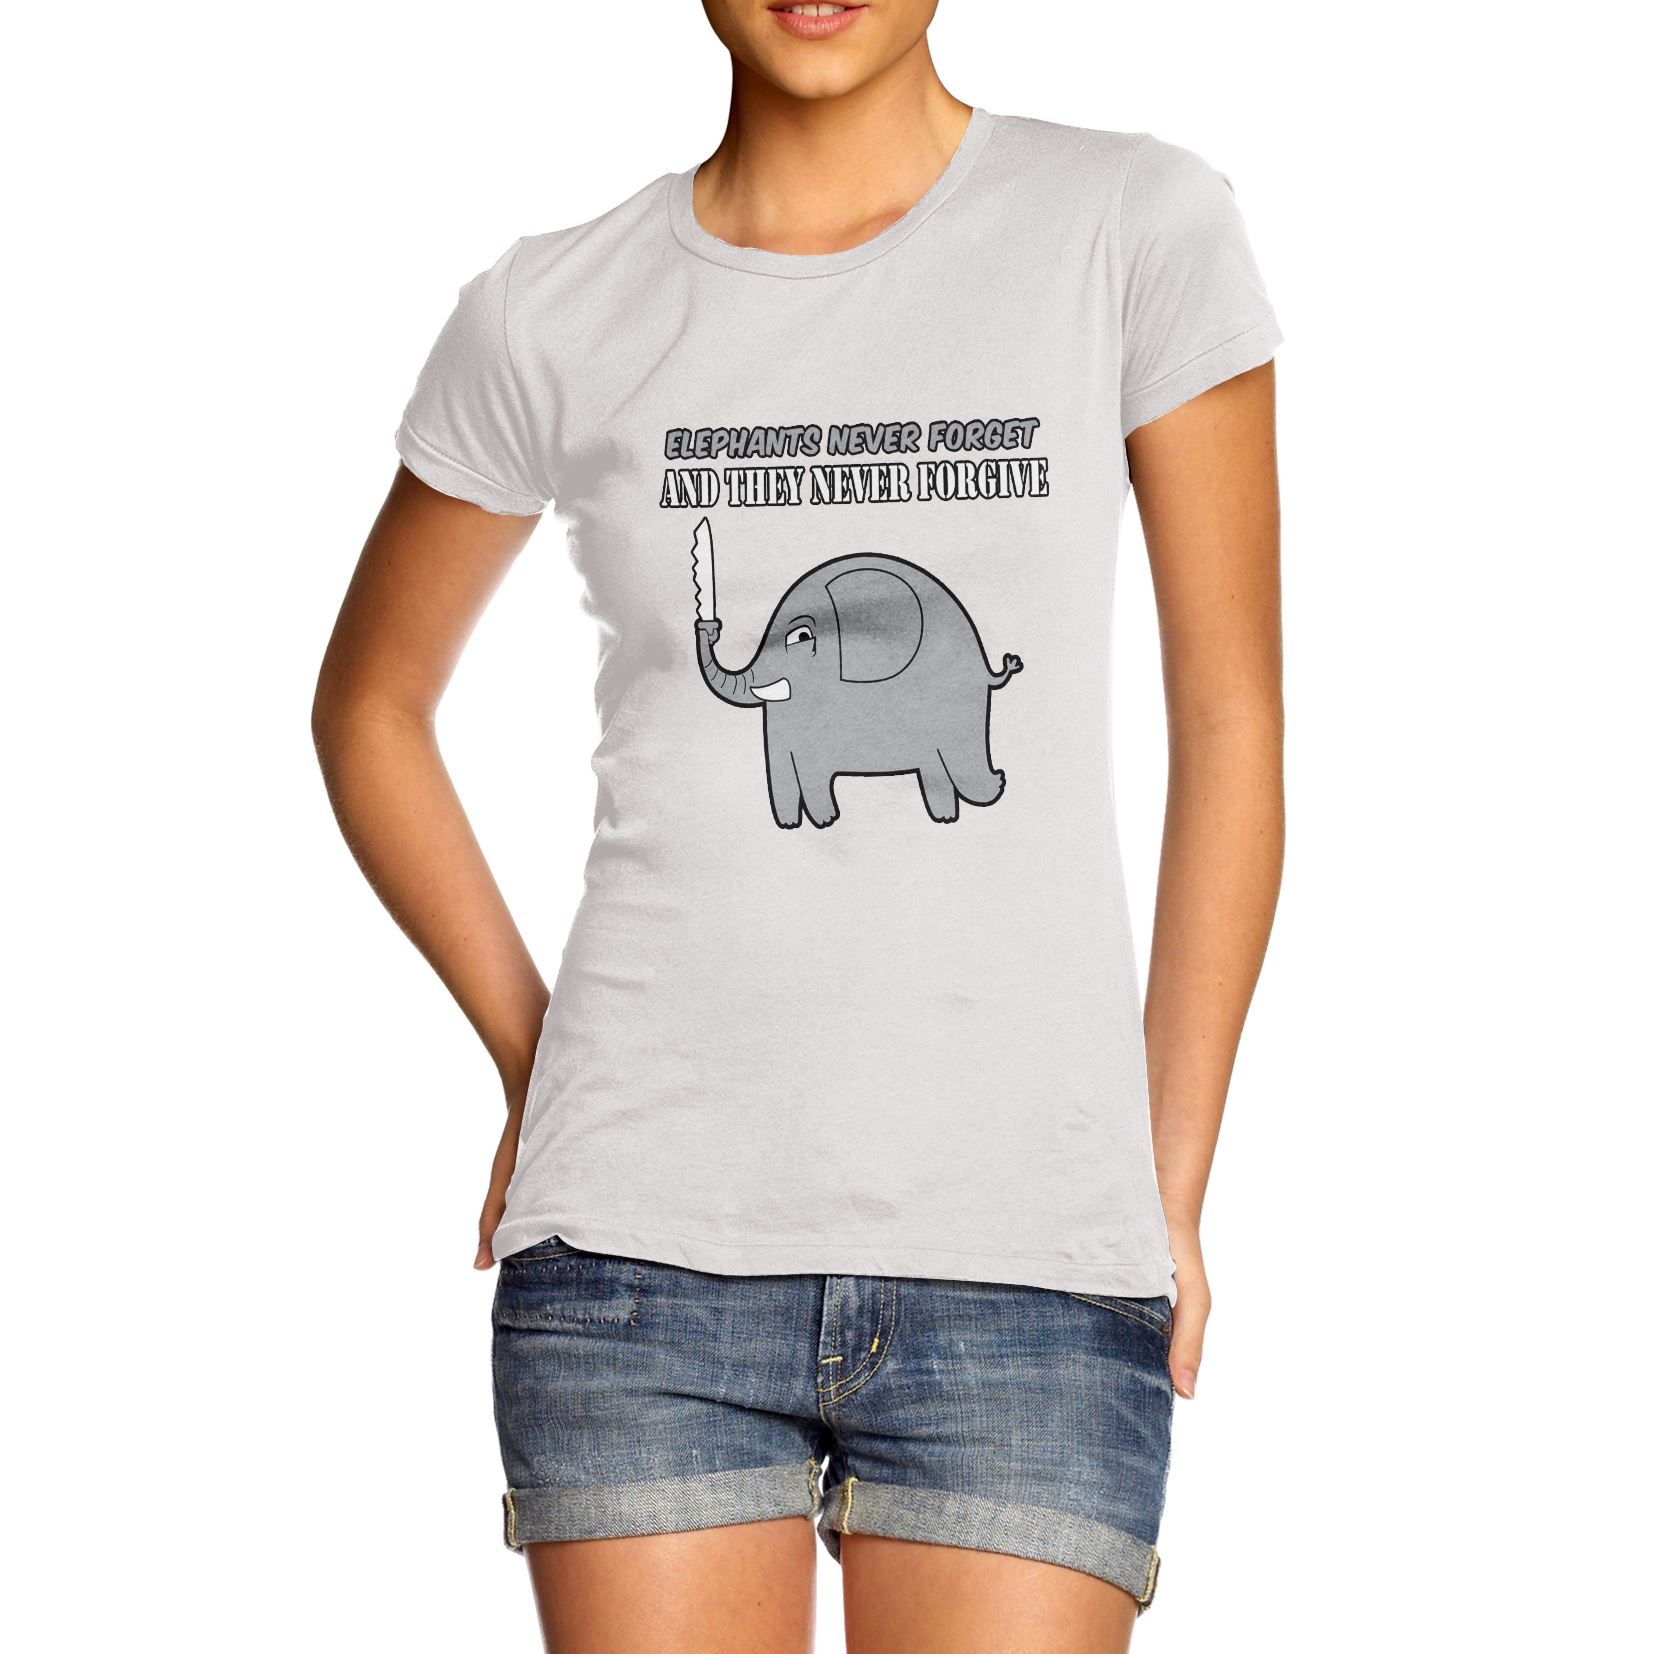 ccb5eed8 Twisted Envy Women's Elephants Never Forget And Never Forgive Funny ...